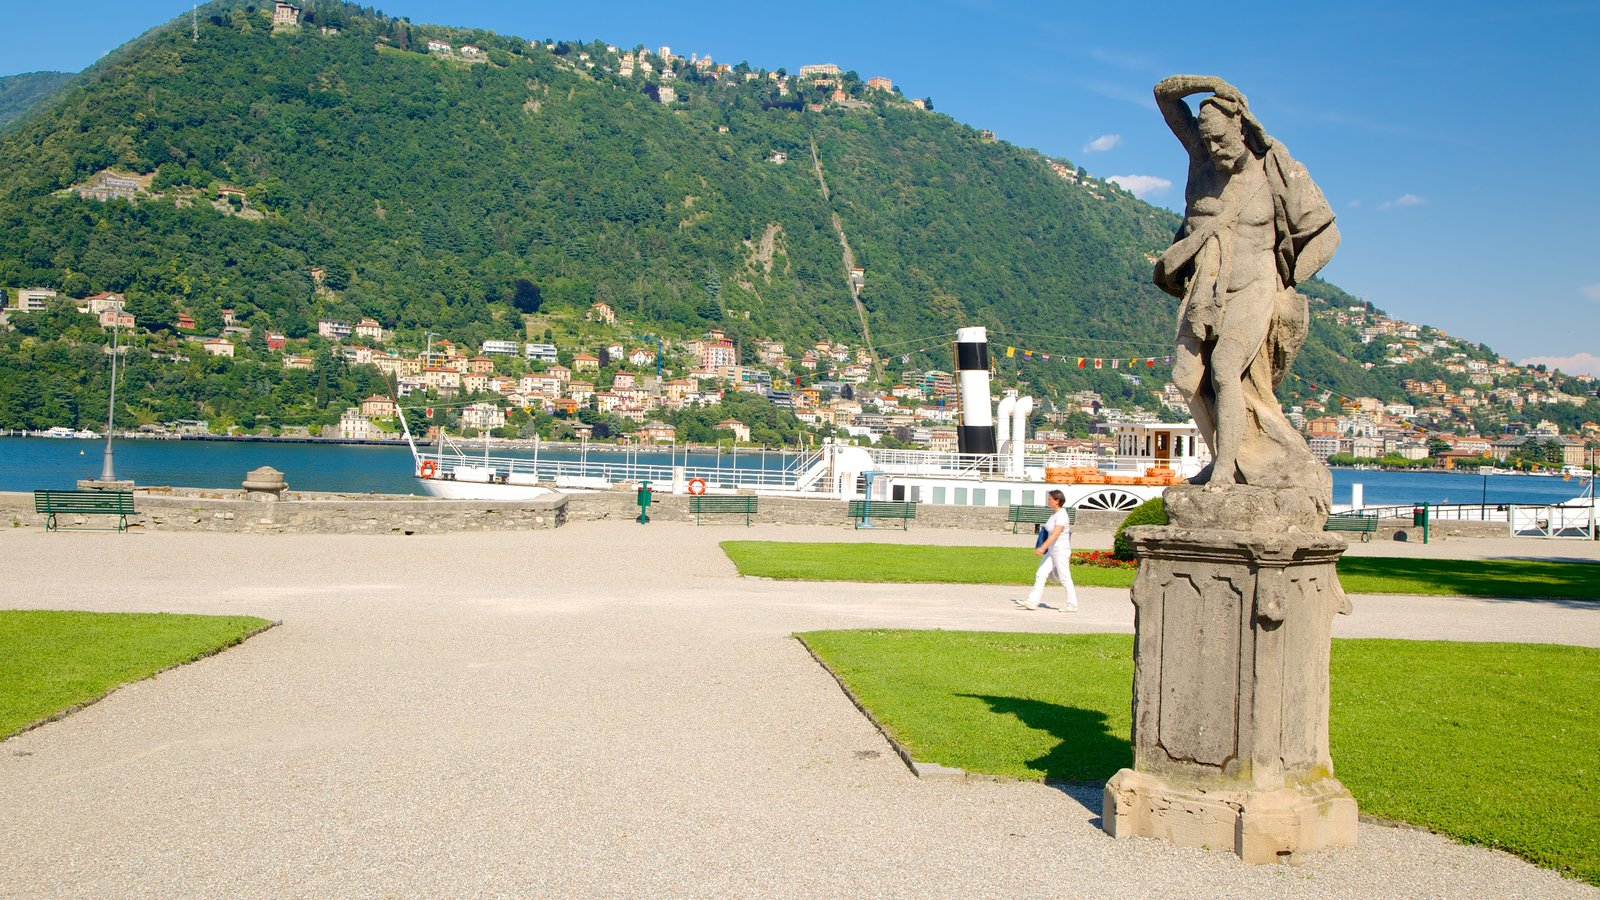 Villa Olmo which includes a statue or sculpture, a coastal town and mountains